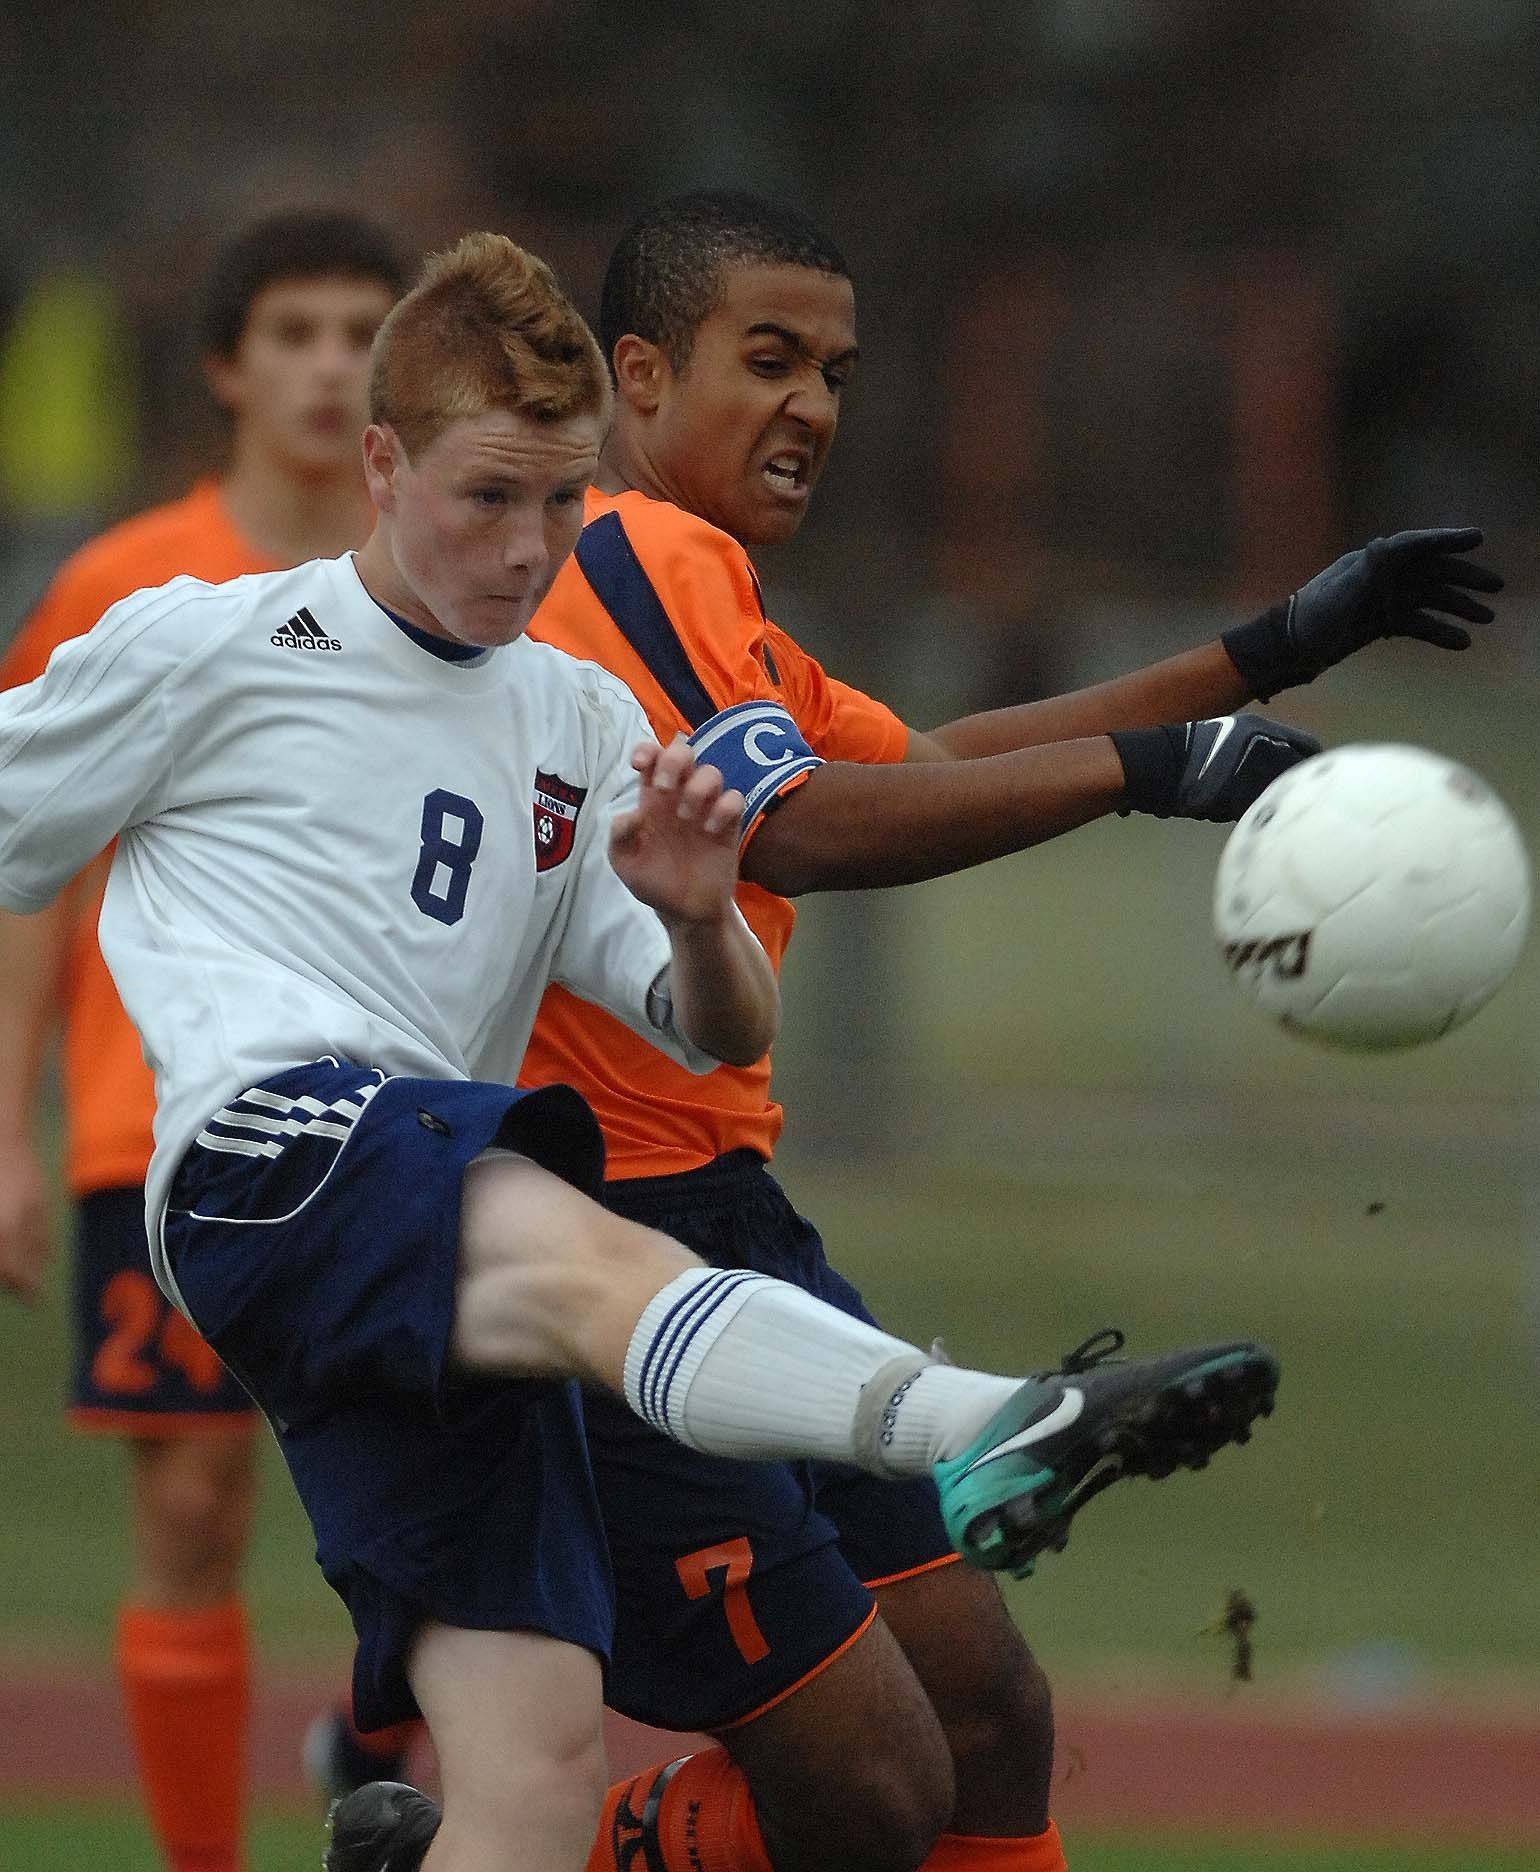 Pat Webb of Lisle,left, and Alexander Dago of Latin vie for the ball. This took place during the Lisle vs. Latin boys soccer sectional final in Lisle Tuesday.